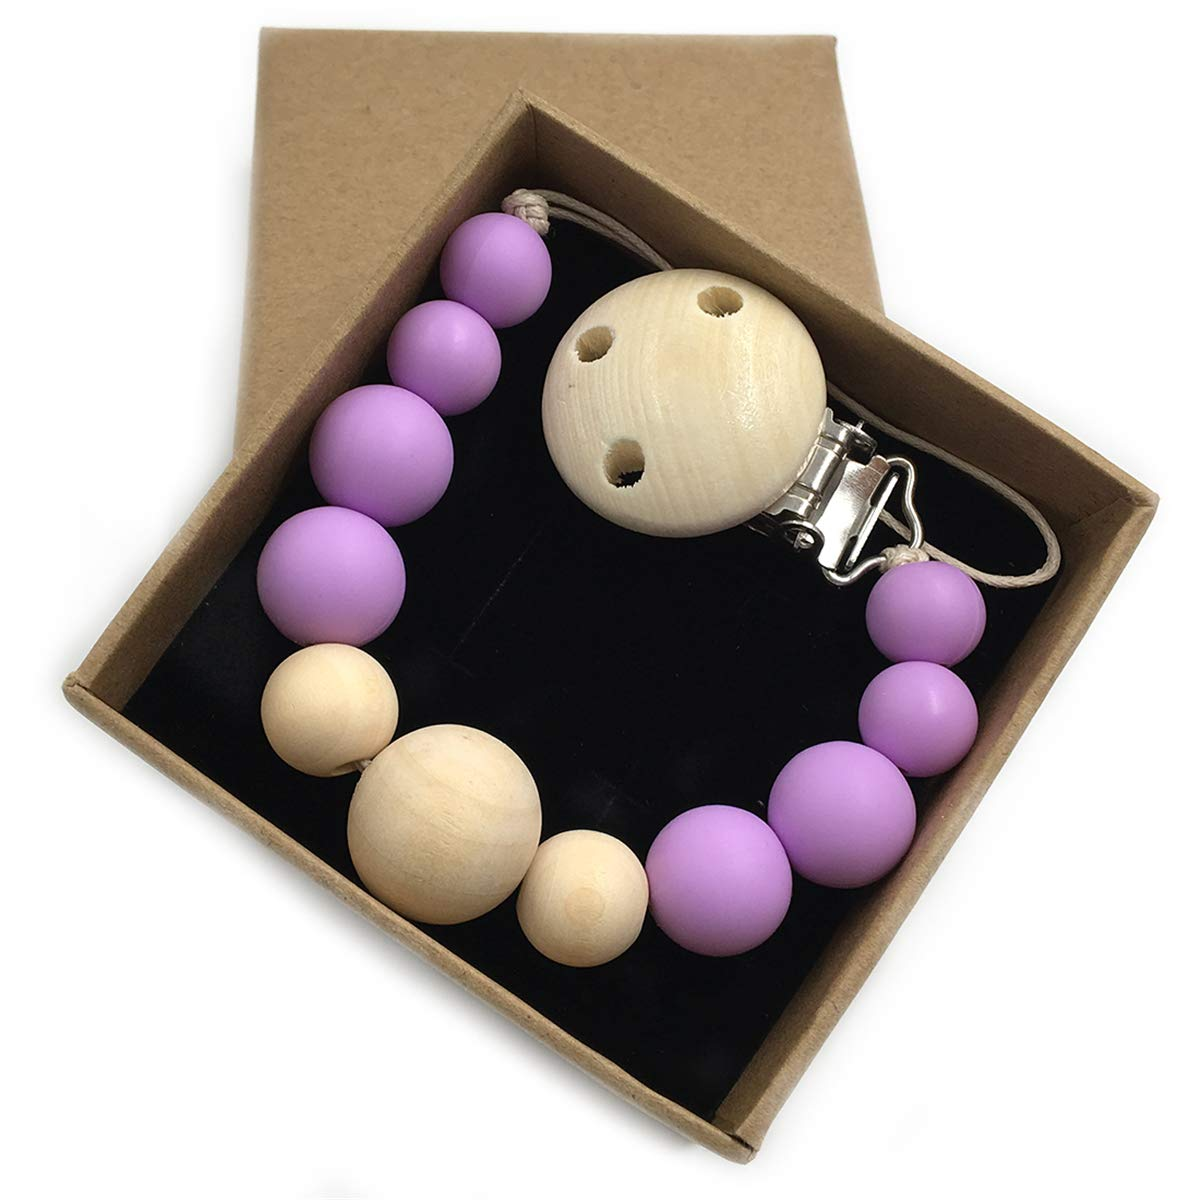 KH150-1 Wendysun Baby Silicone Teether Wooden Pacifier Clip Newborn Baby Girl//Boy Soother Clip Chew Beads DIY Natural Baby Teething Grasping Toy